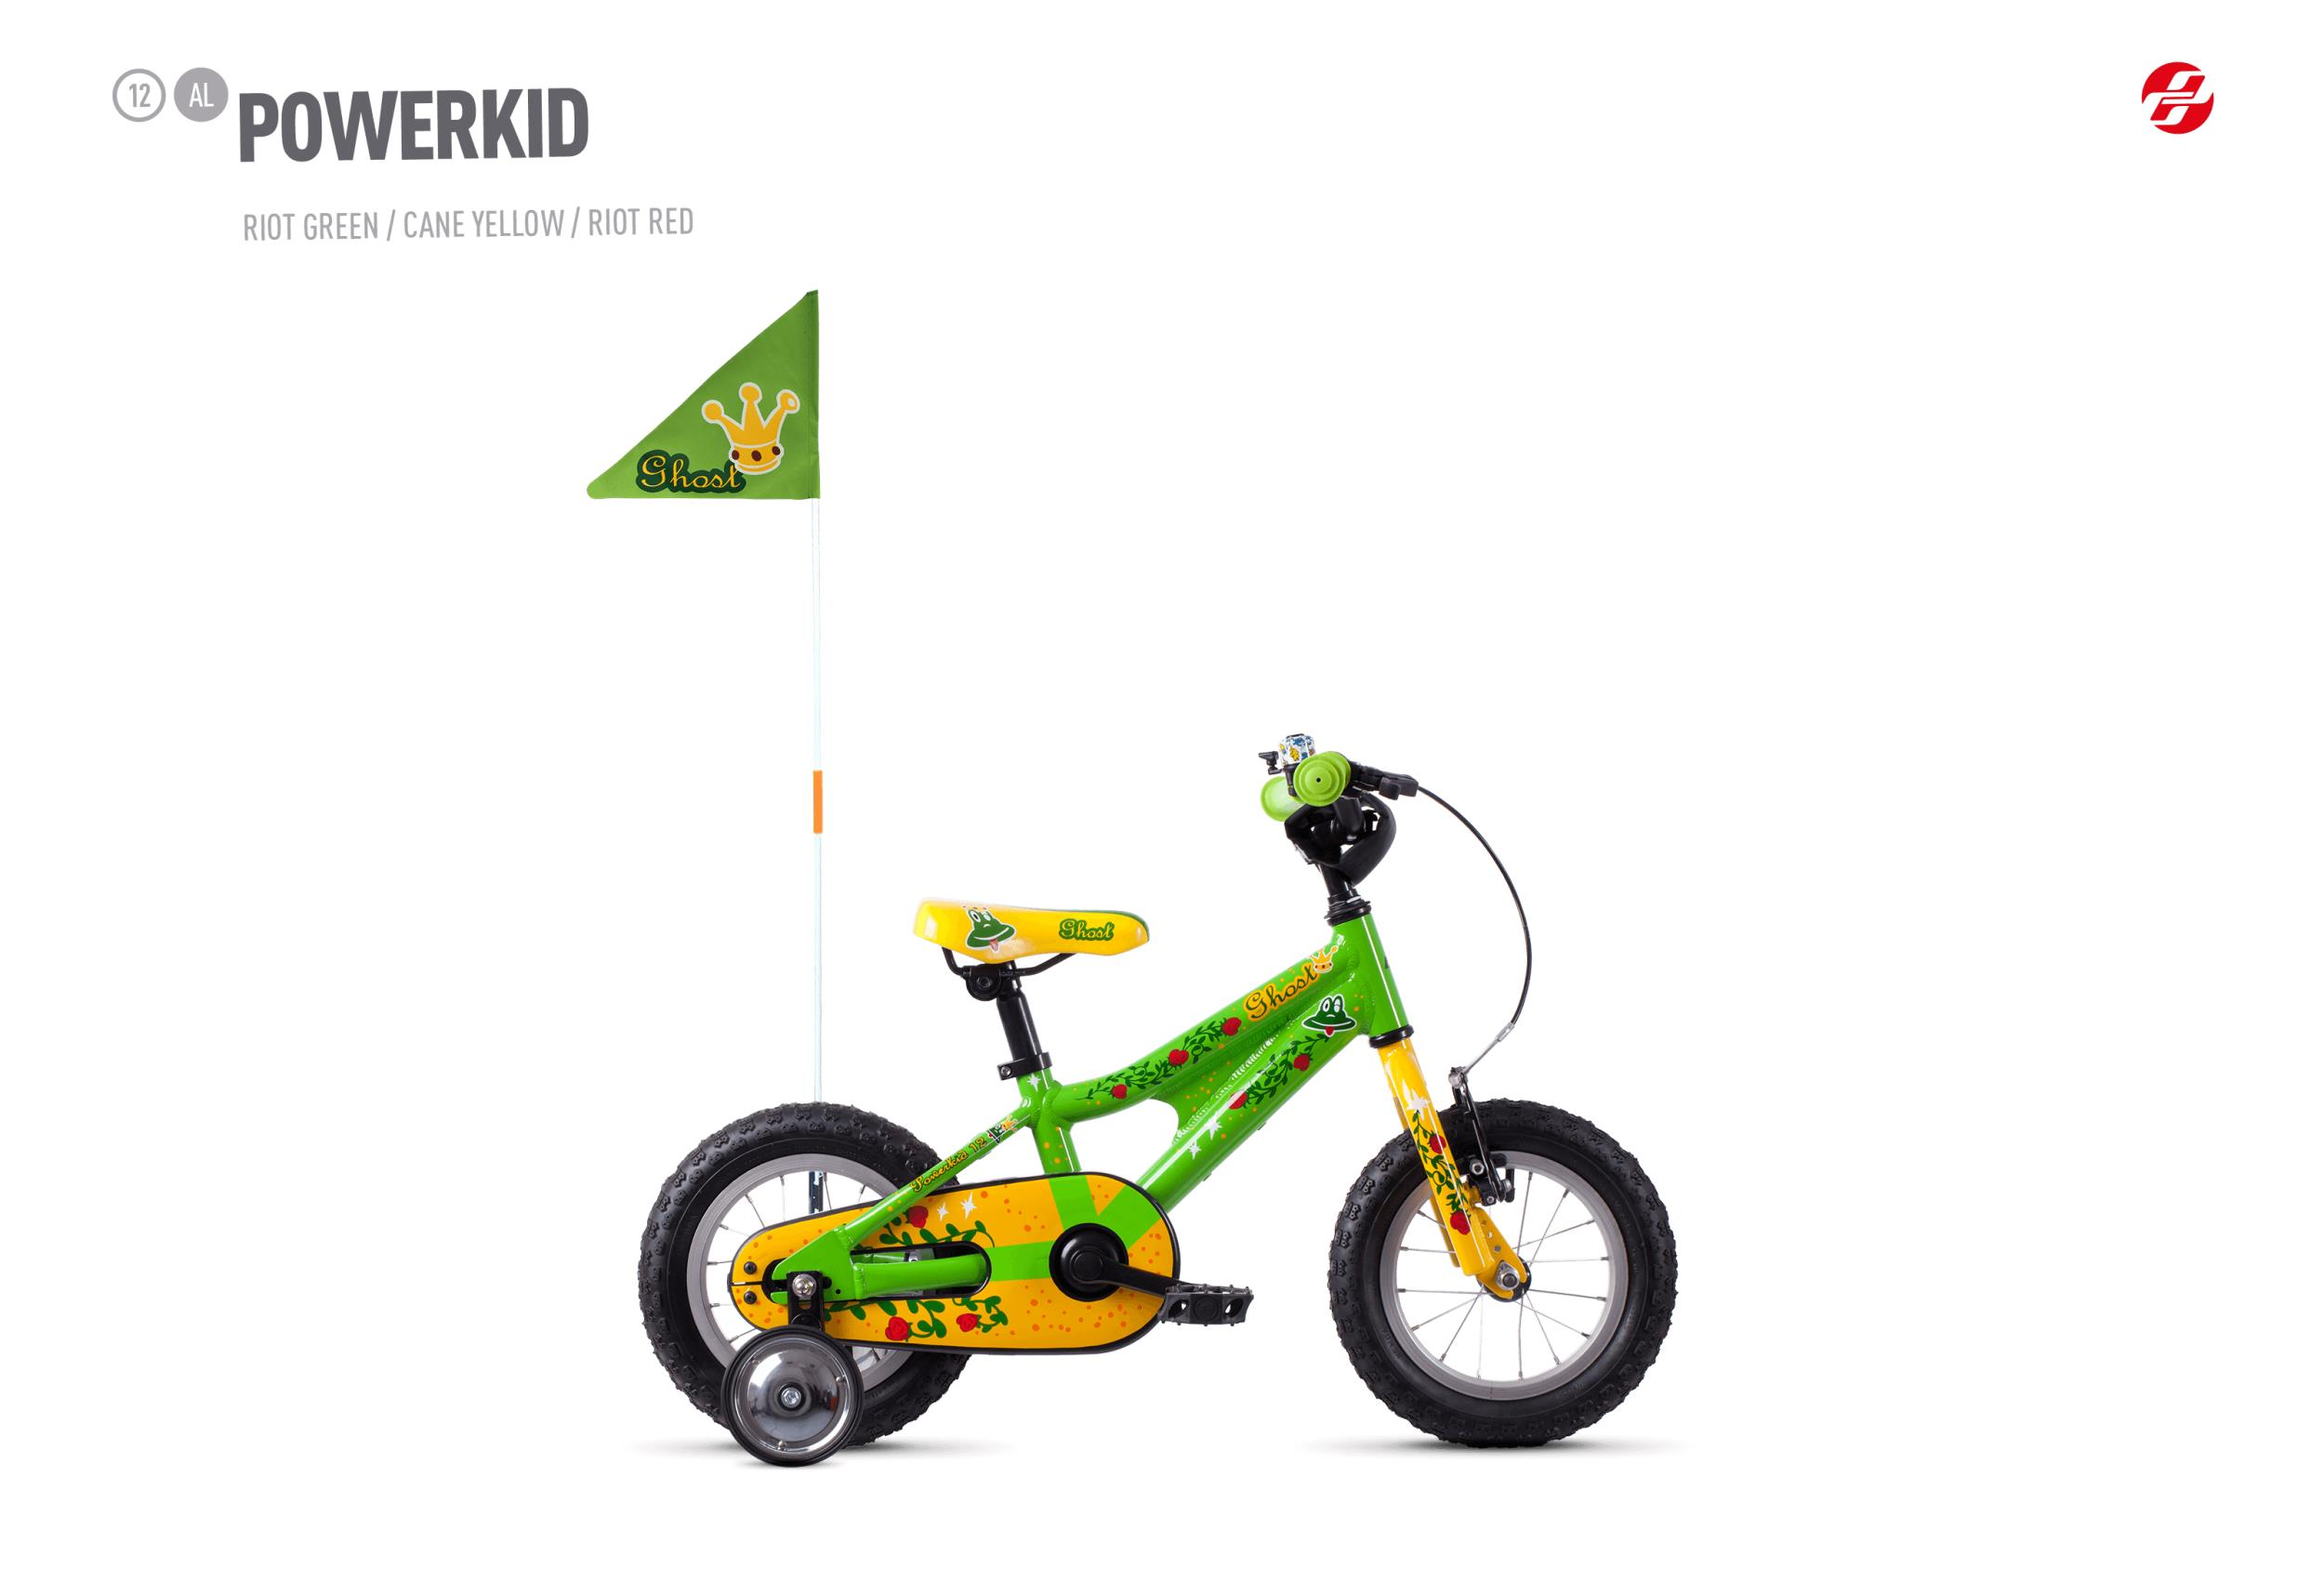 GHOST POWERKID AL 12 K - 12 -  riot green / cane yellow / riot red 2019